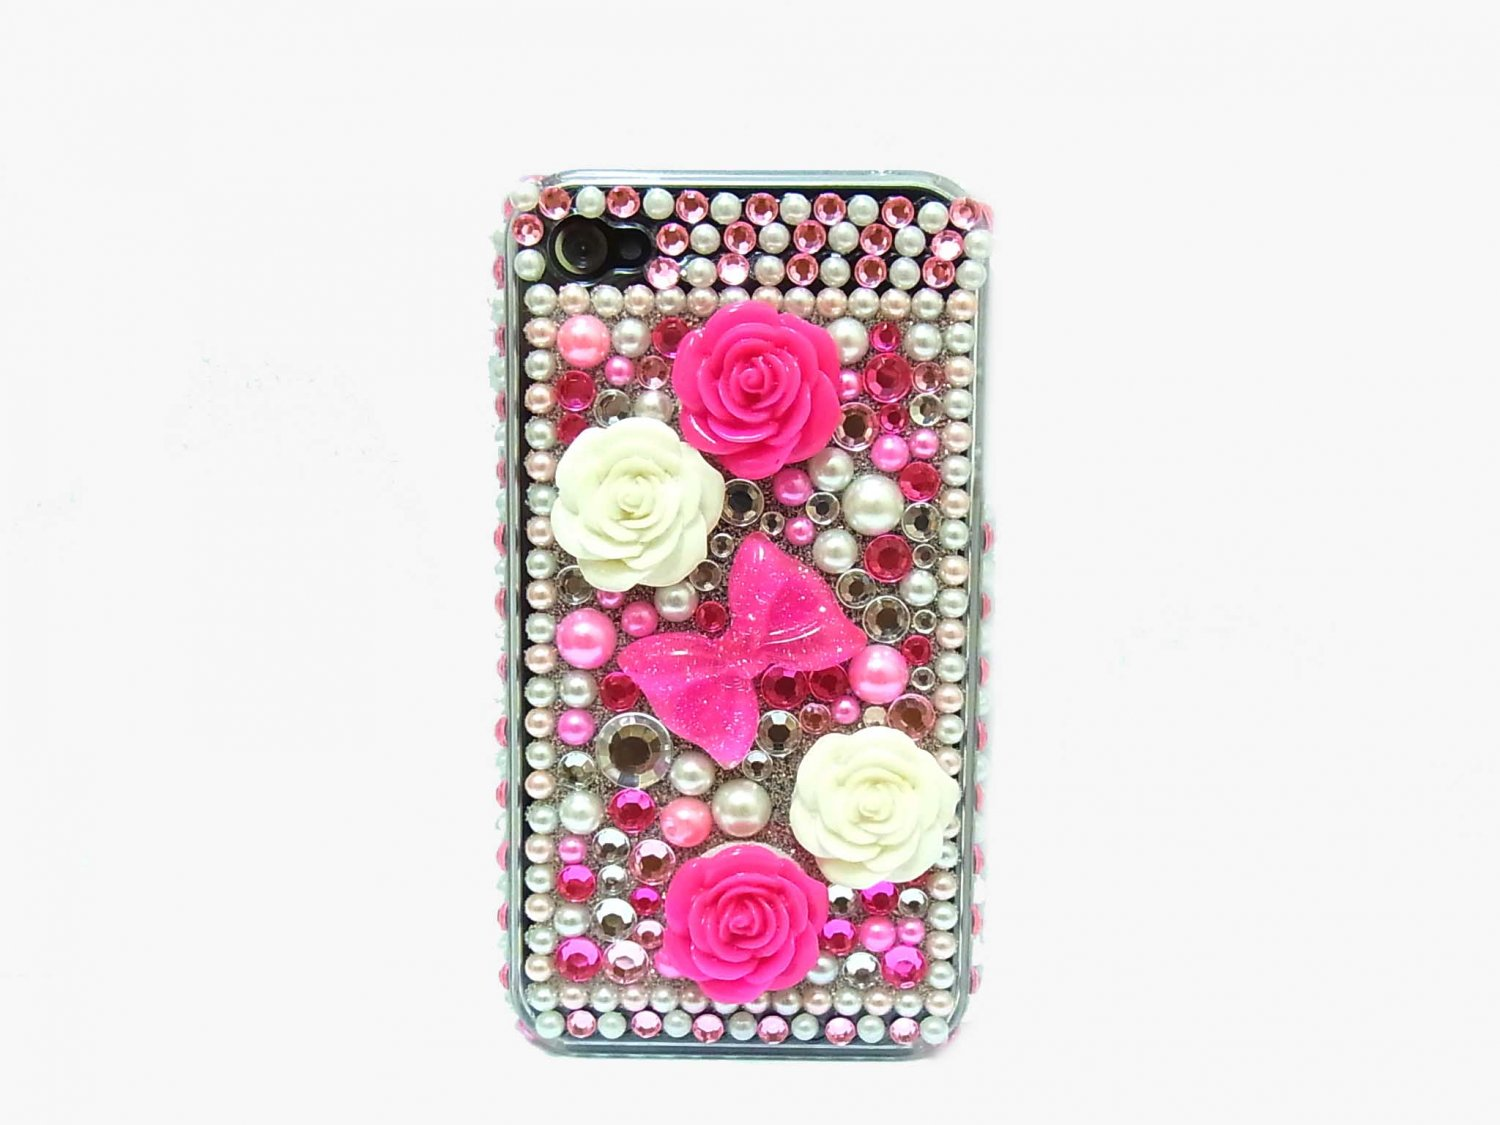 Bling Rhinestone Crystal Pink Ribbon Flower Hard Case Cover for Apple iPhone 4 4G 4S